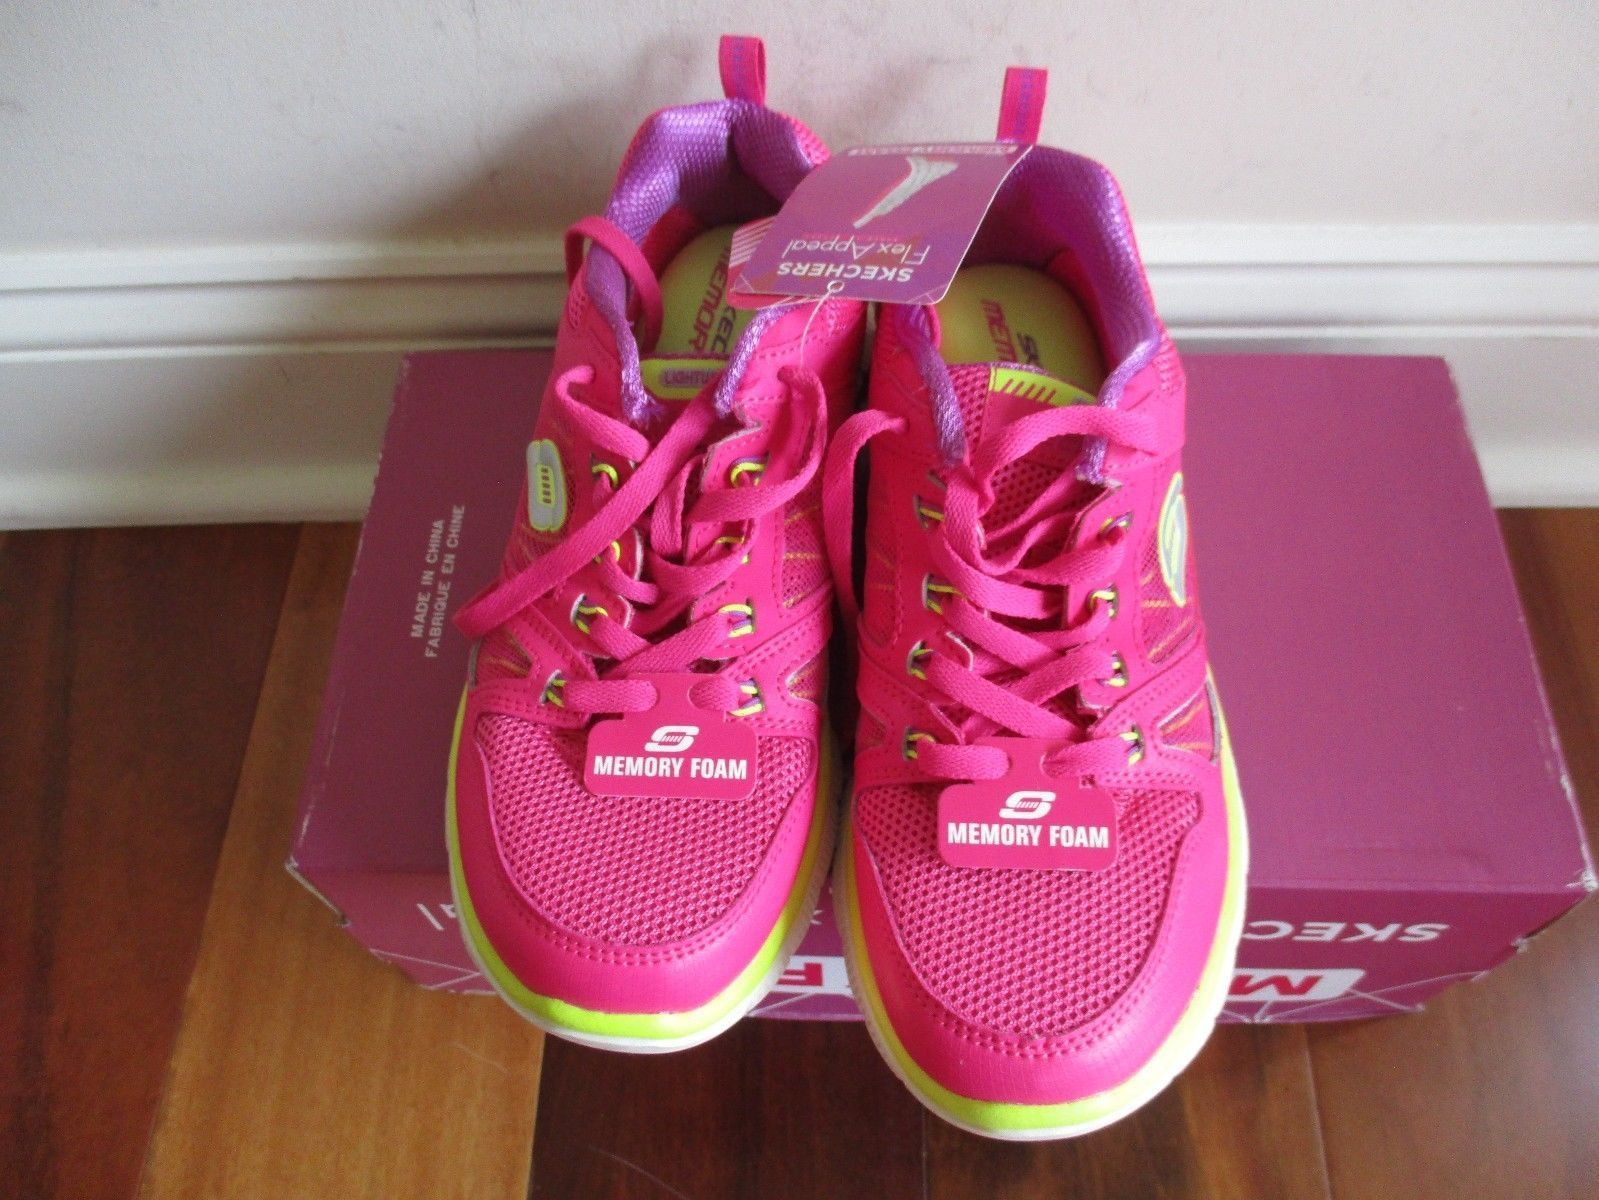 BNIB Skechers Flex Appeal - Spring Fever Womens' Athletic Shoes, ships w/o box image 12